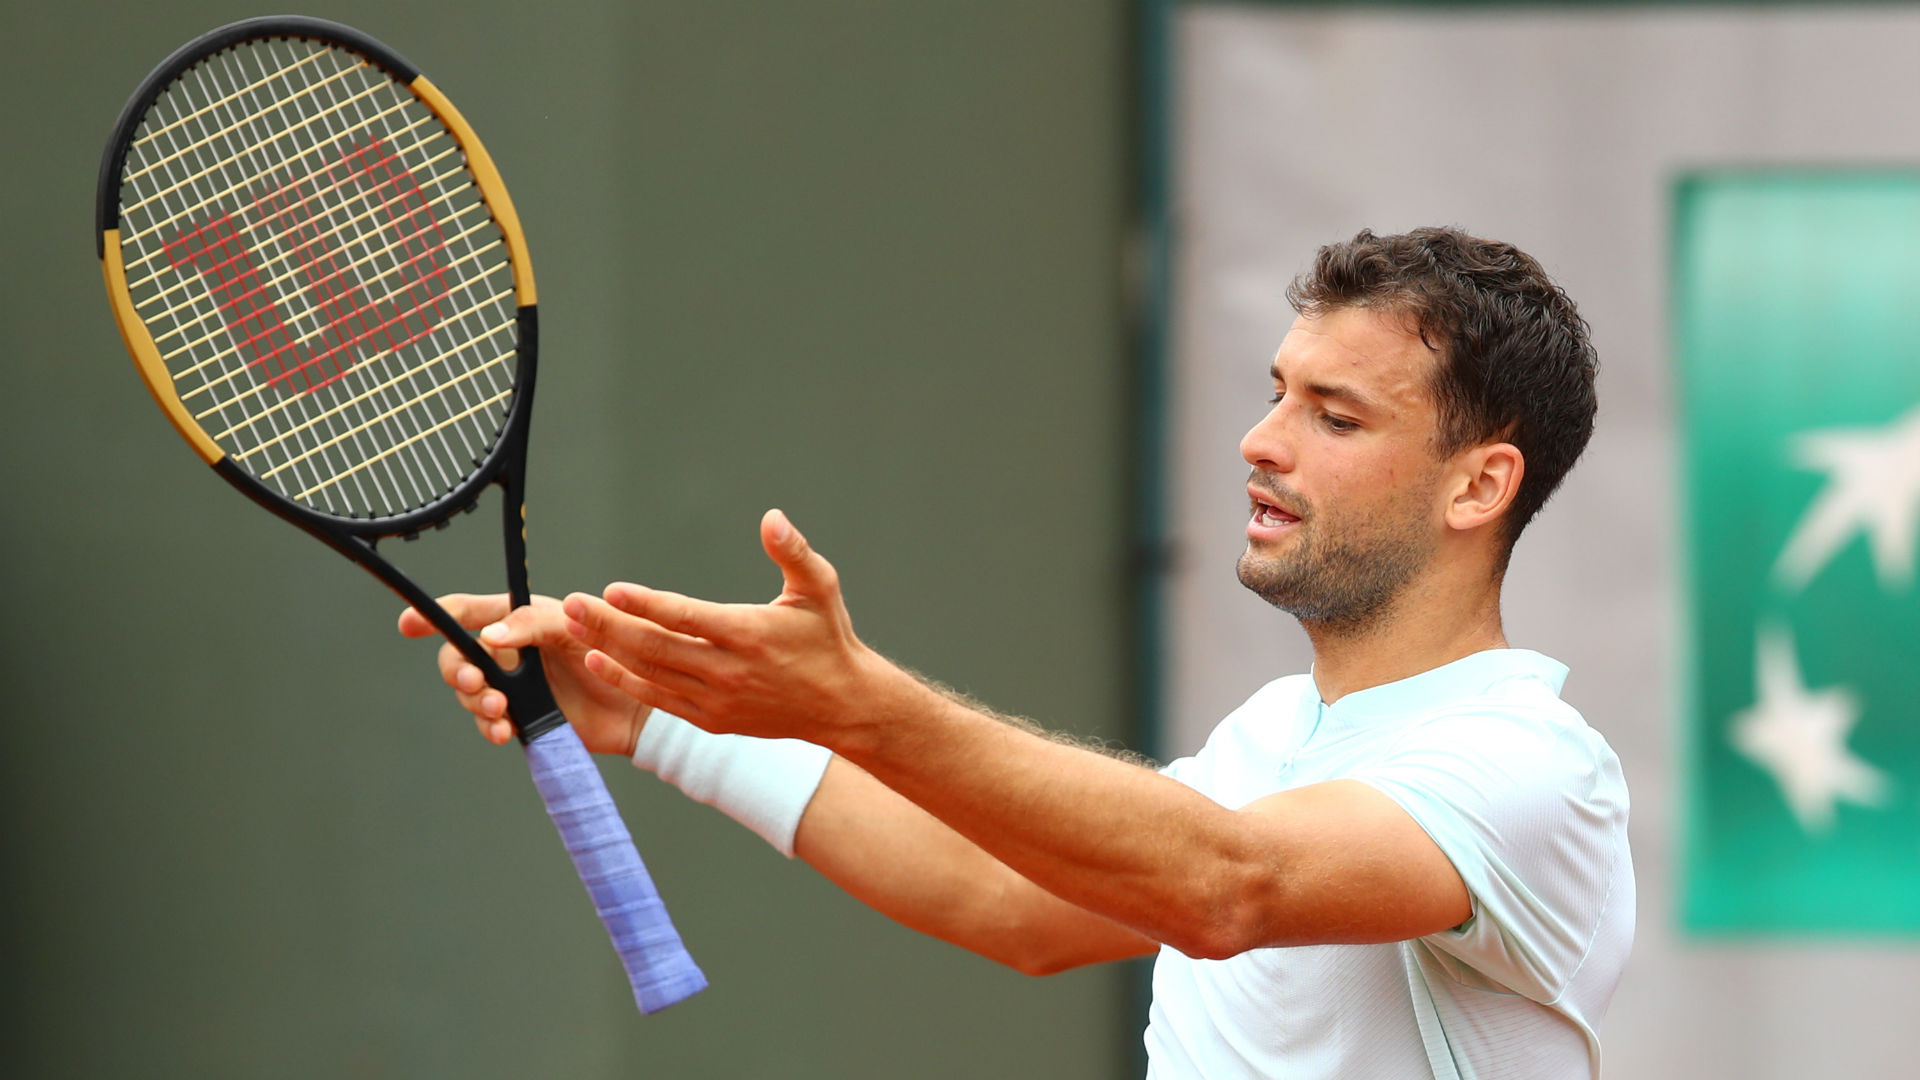 Grigor Dimitrov upset by Fernando Verdasco in French Open third round